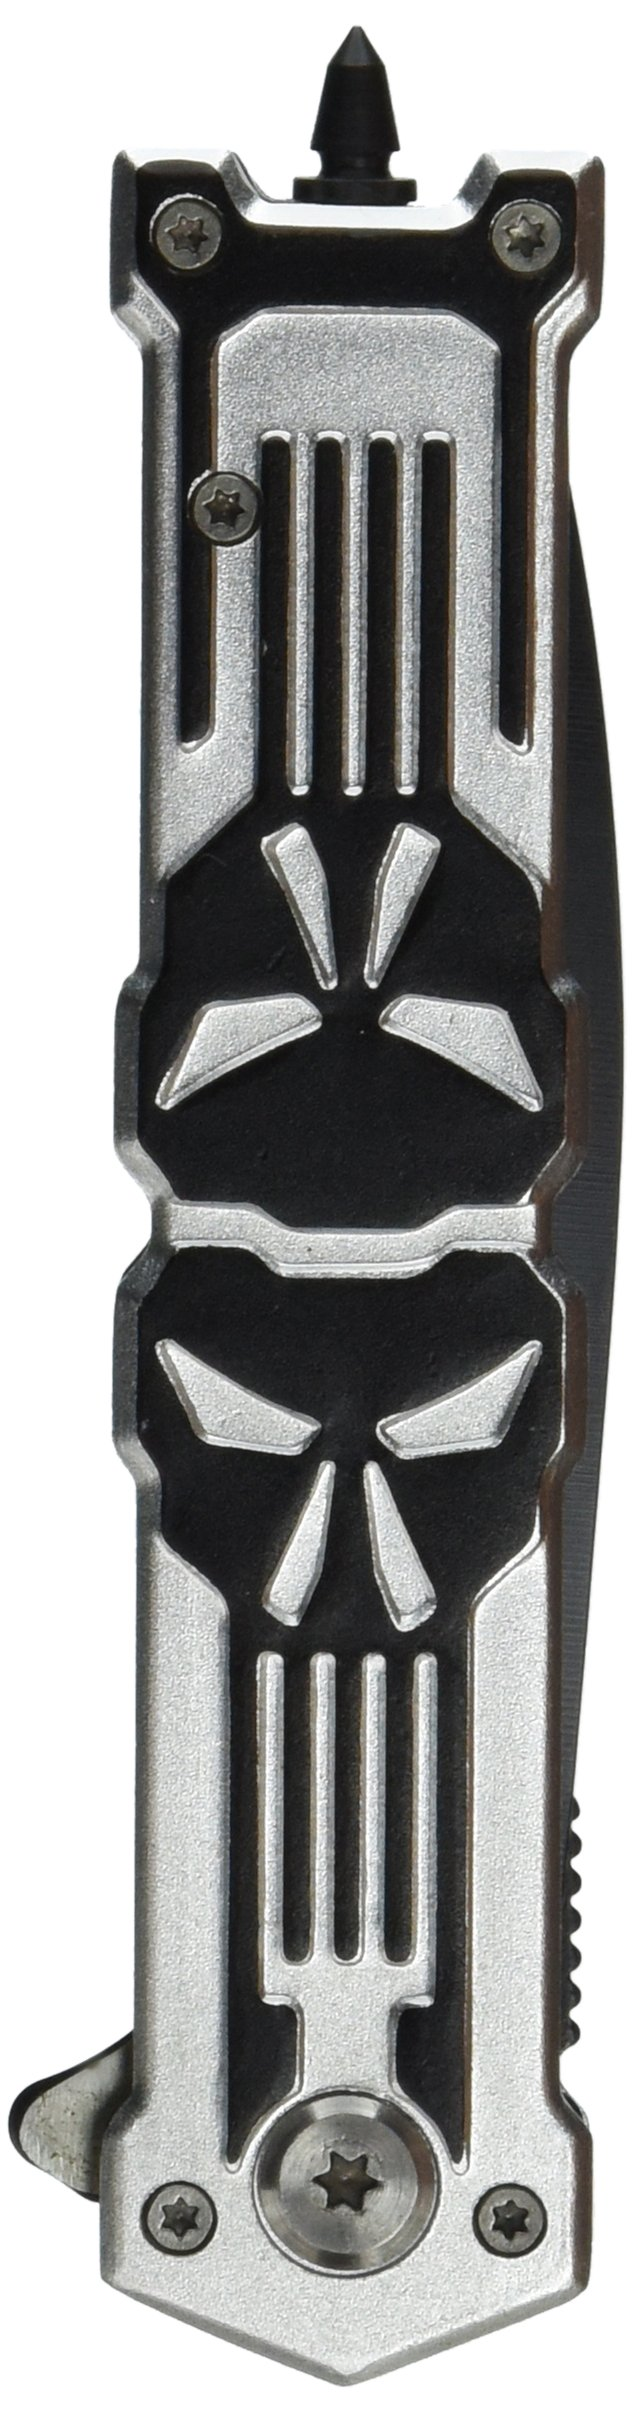 TAC Force TF-592SB Assisted Opening Folding Knife, Black Spear Point Blade, Black/Silver Skull Handle, 4-3/4-Inch Closed